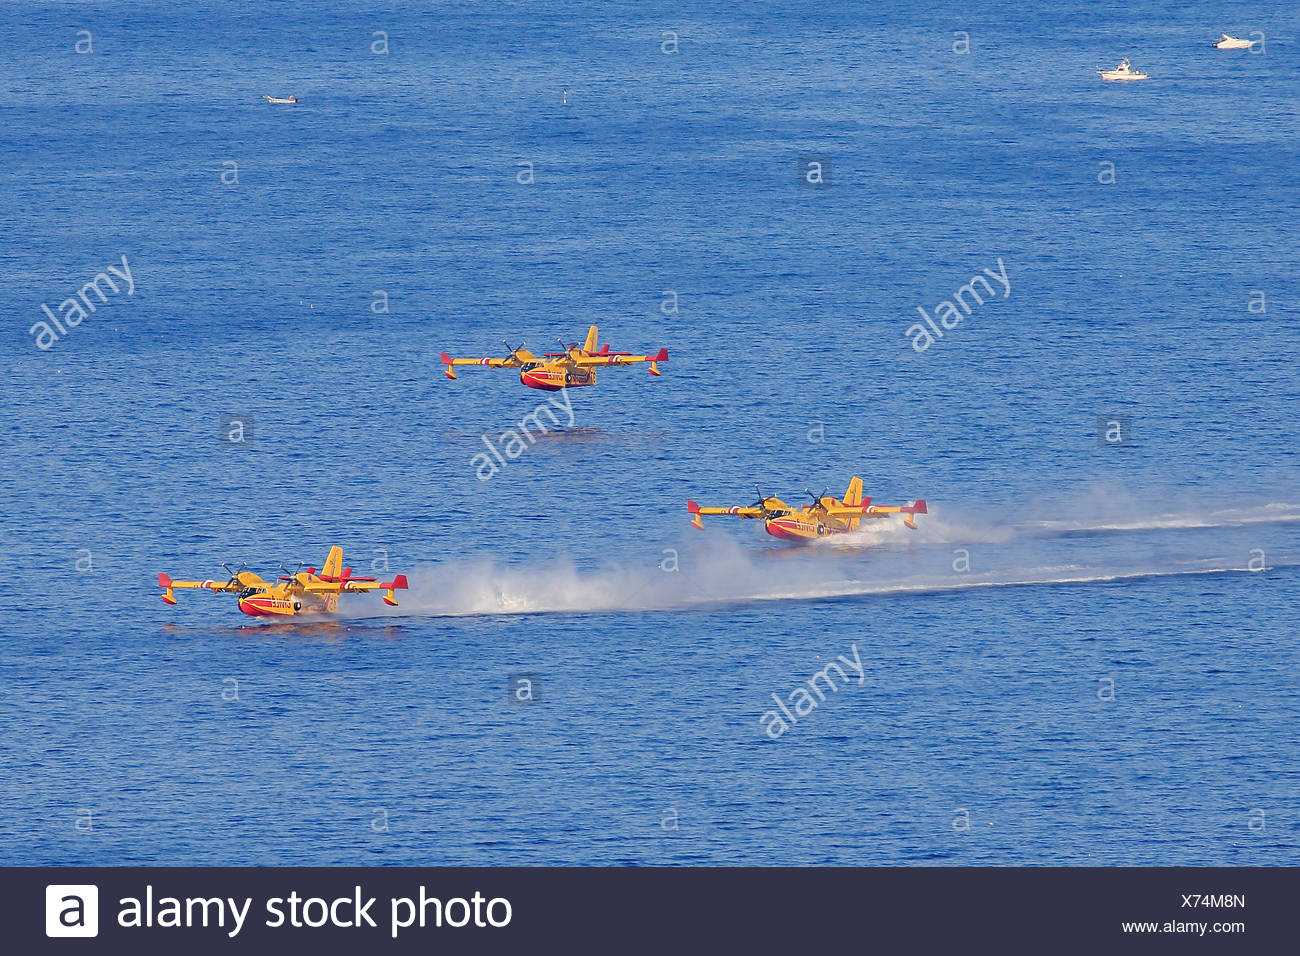 Firefighting aircraft Canadair CL 415, French Sécurité Civile, filling with seawater to extinguish forest fires - Stock Image